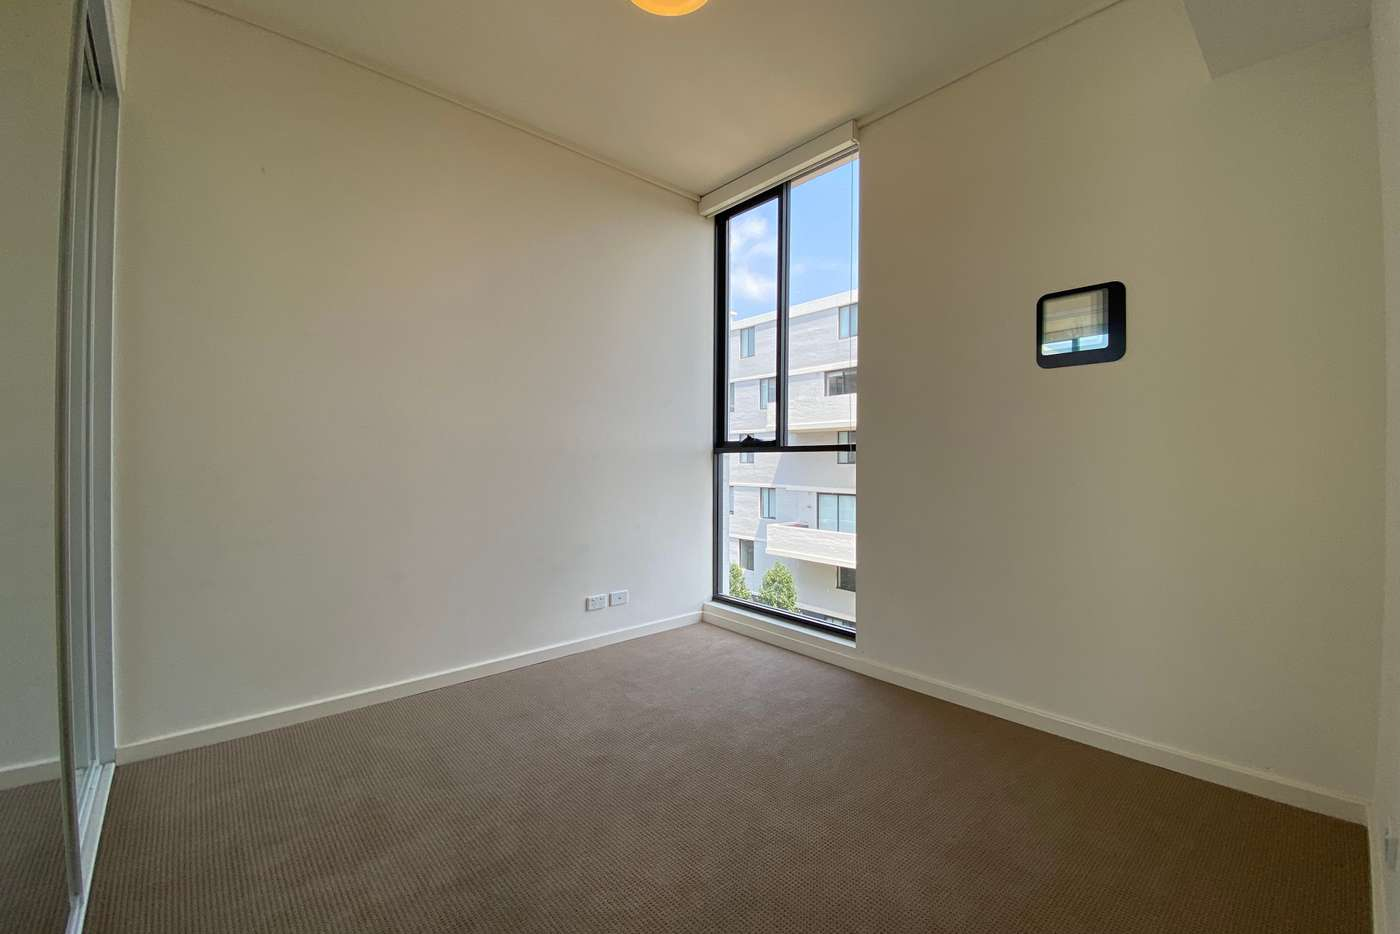 Sixth view of Homely apartment listing, 427/1 Vermont Crescent, Riverwood NSW 2210